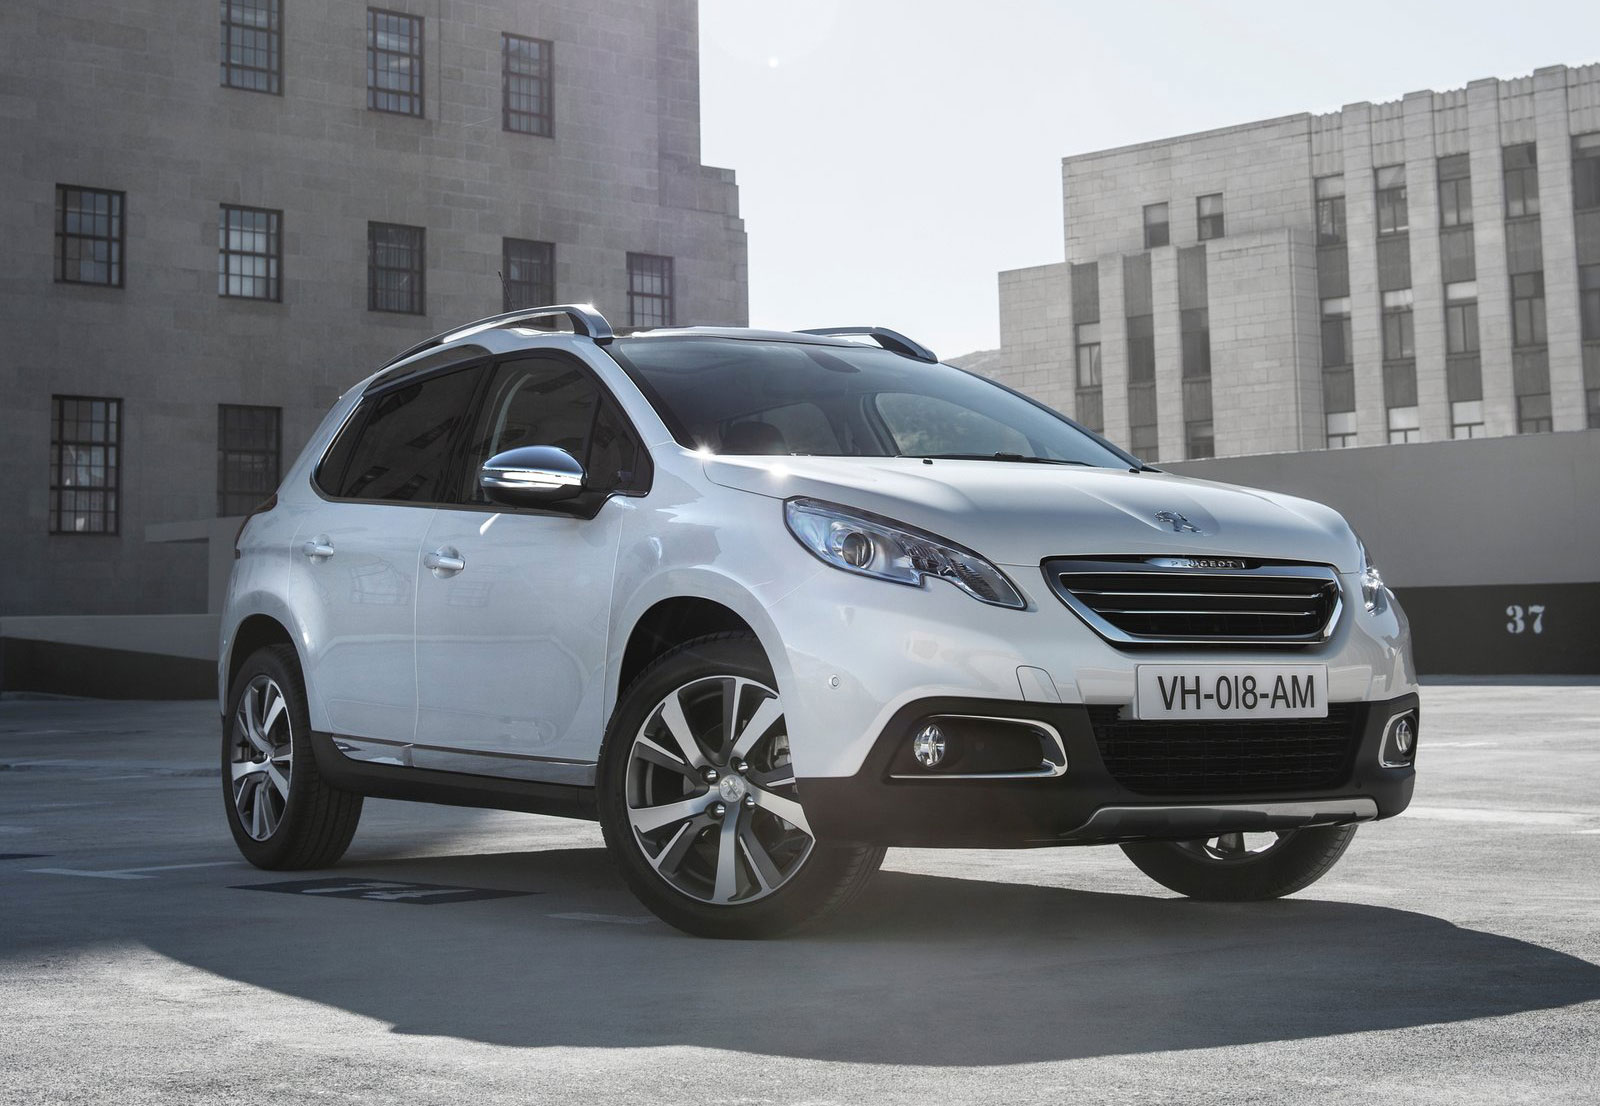 Peugeot 2008 Crossover Full Details And Gallery Paul Tan Image 155640